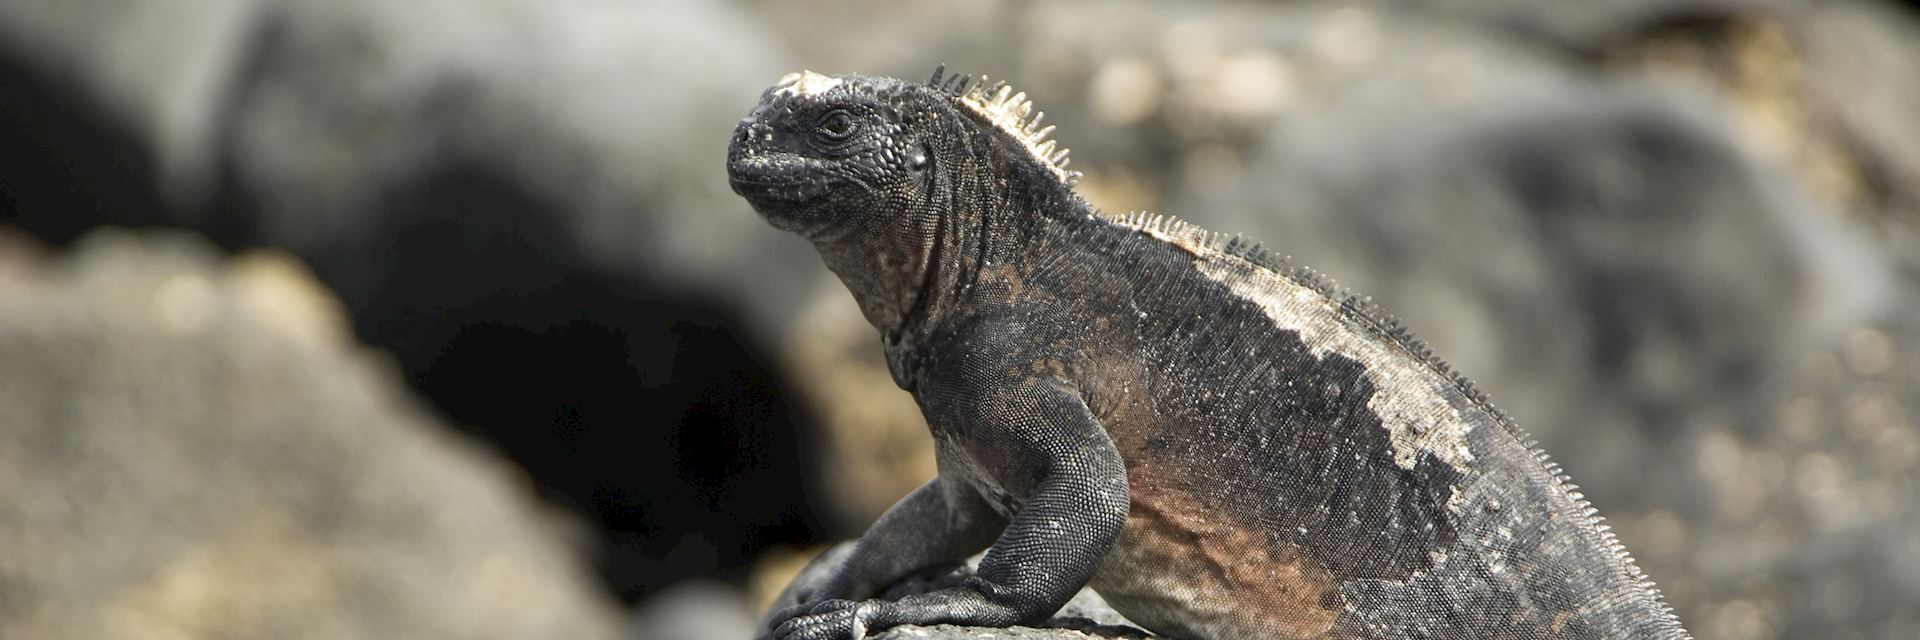 Maine iguana, Galapagos Islands